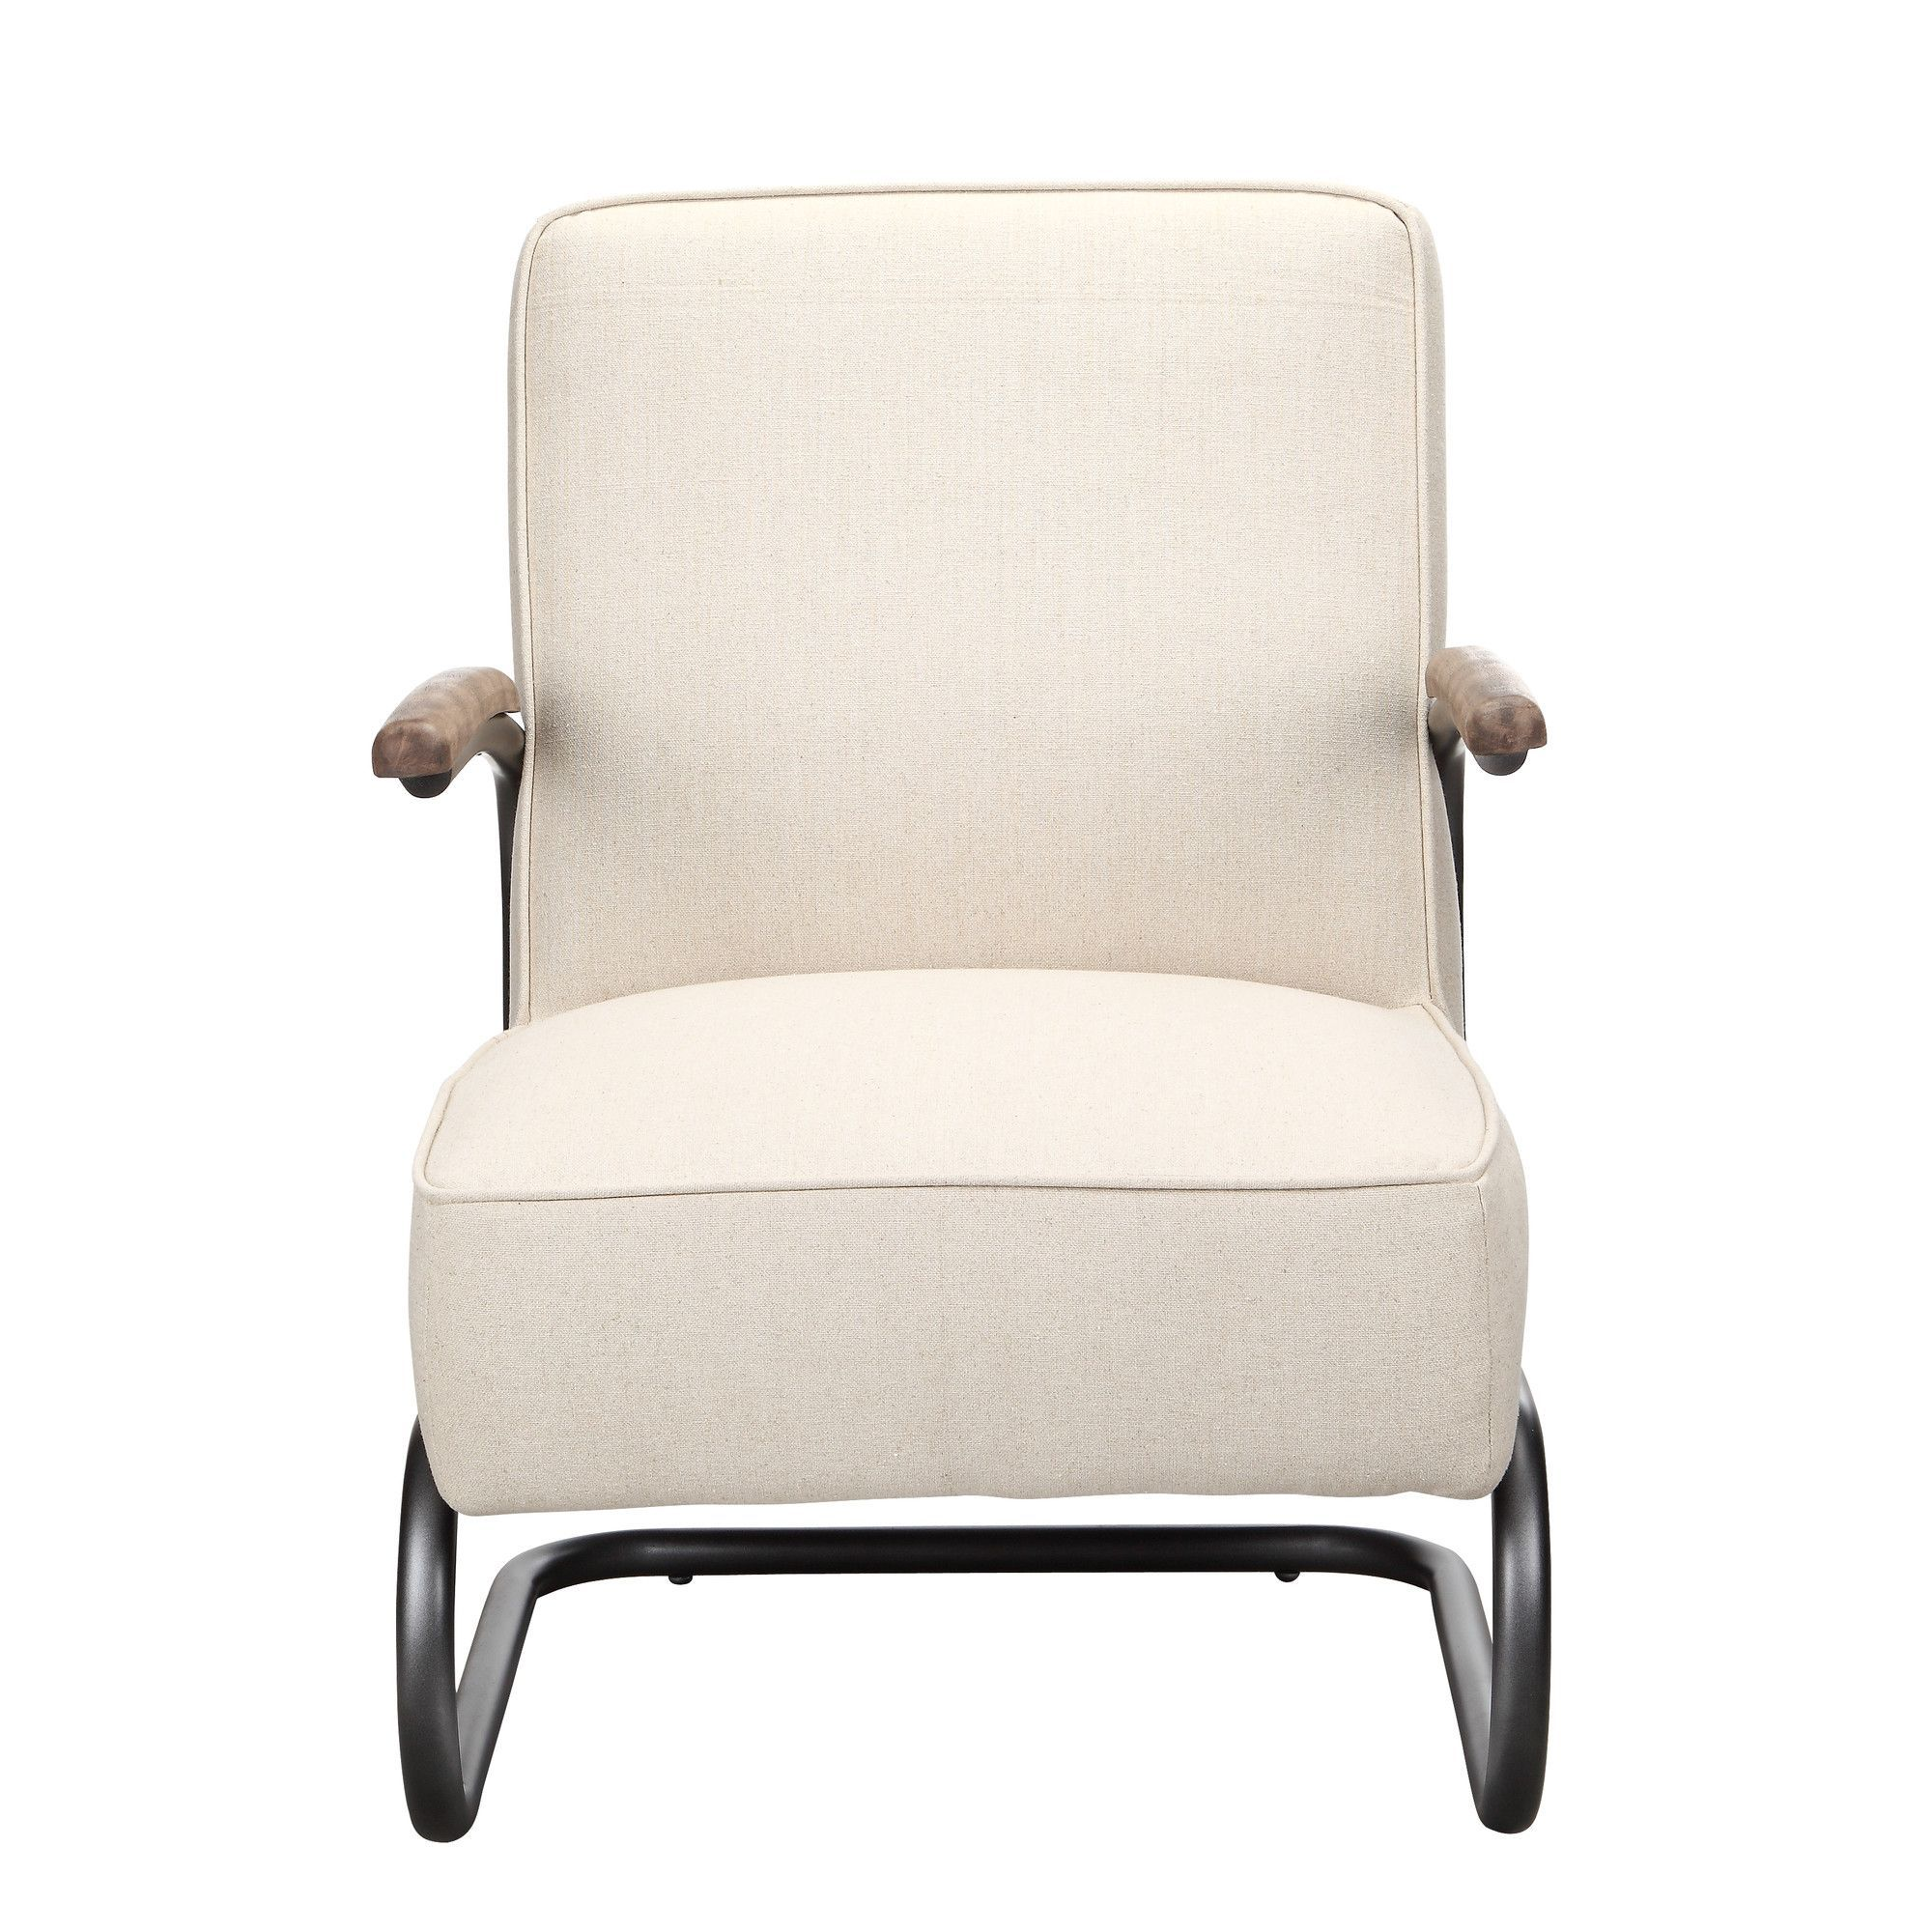 Arm Chair Chair Club Chairs Furniture